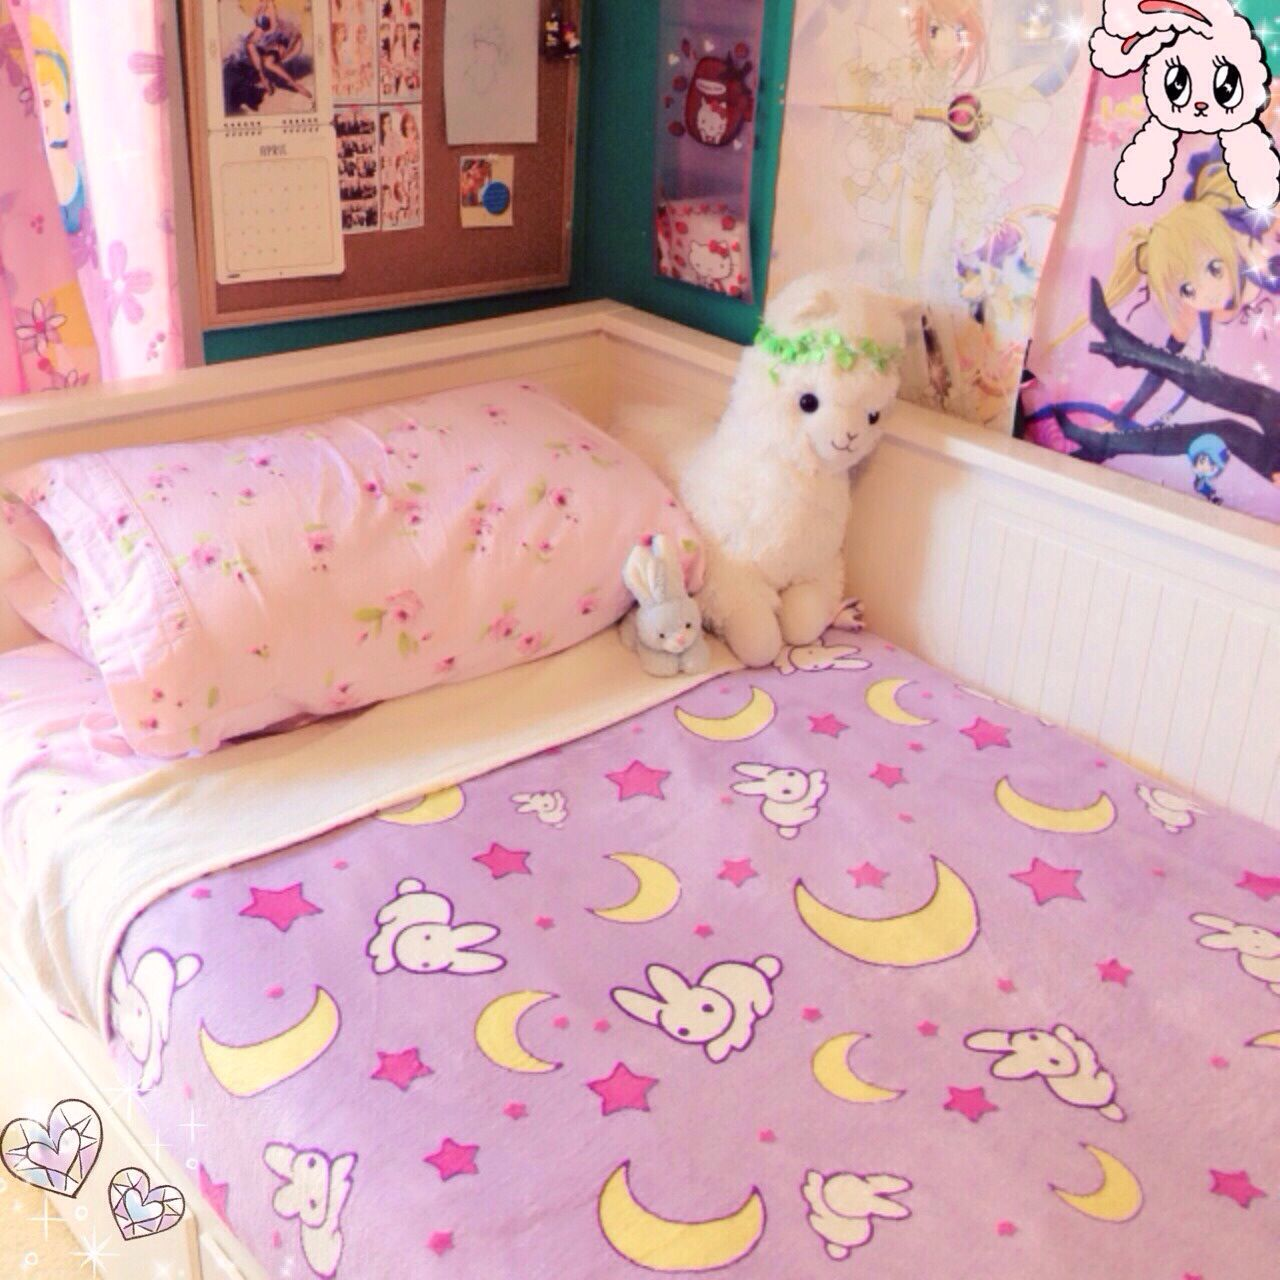 those sailor moon sheets are so cute